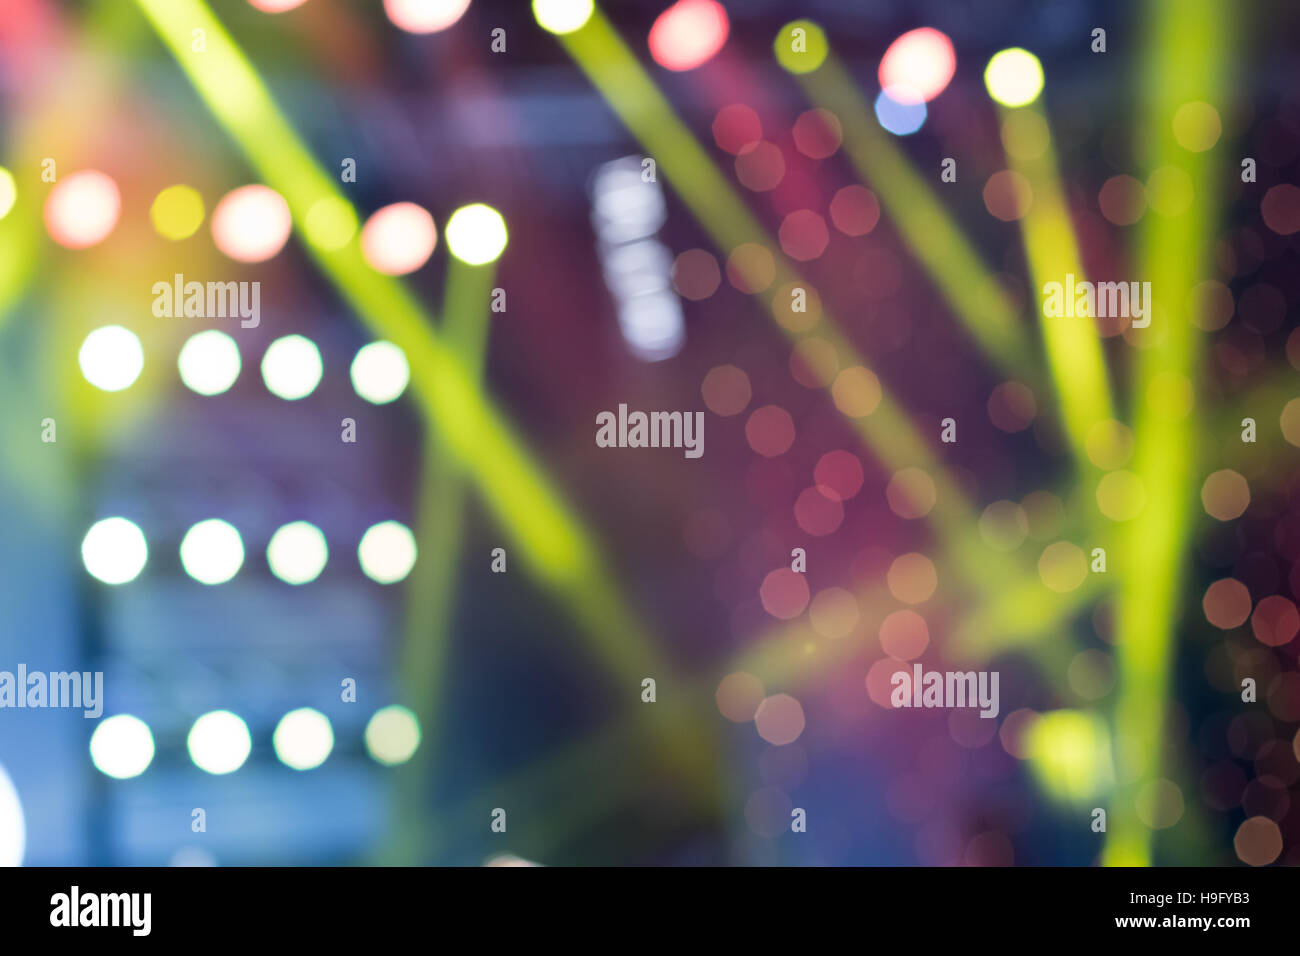 Colorful Stage Lights, light show at the Concert, Blurred lights - Stock Image